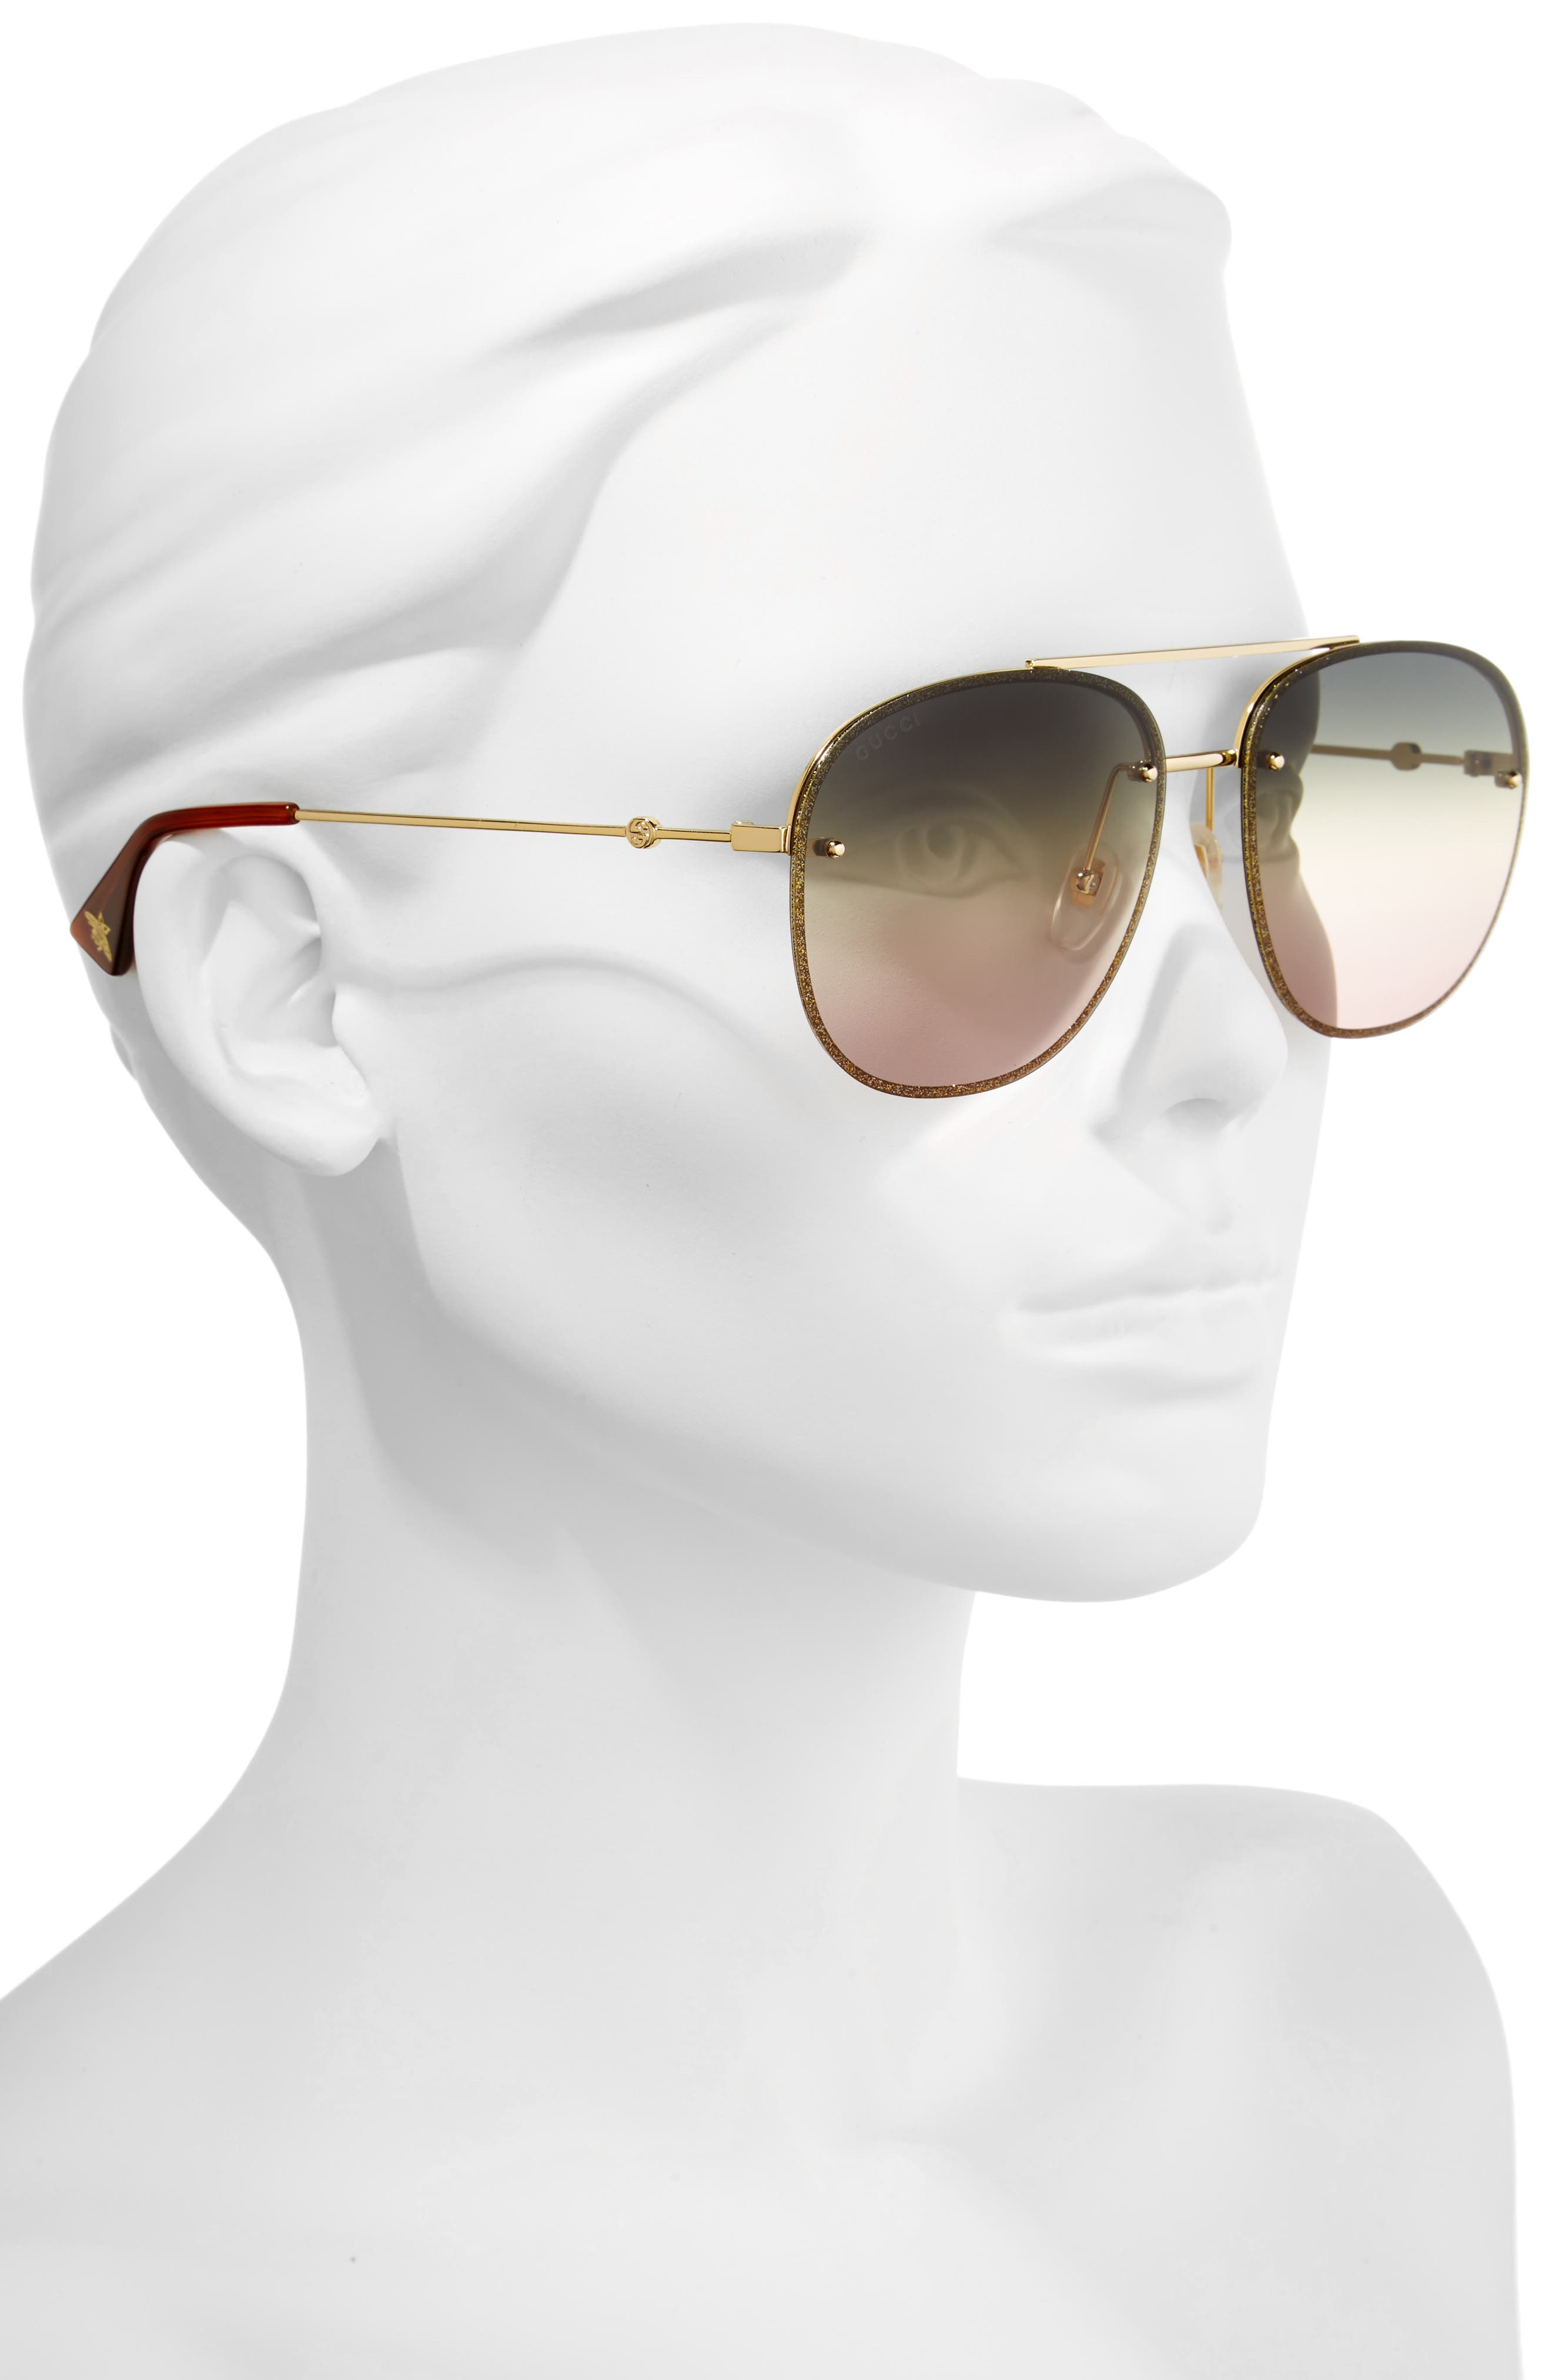 62mm Oversize Aviator Sunglasses,                             Alternate thumbnail 2, color,                             GOLD/ GREEN/ YELLOW/ NUDE